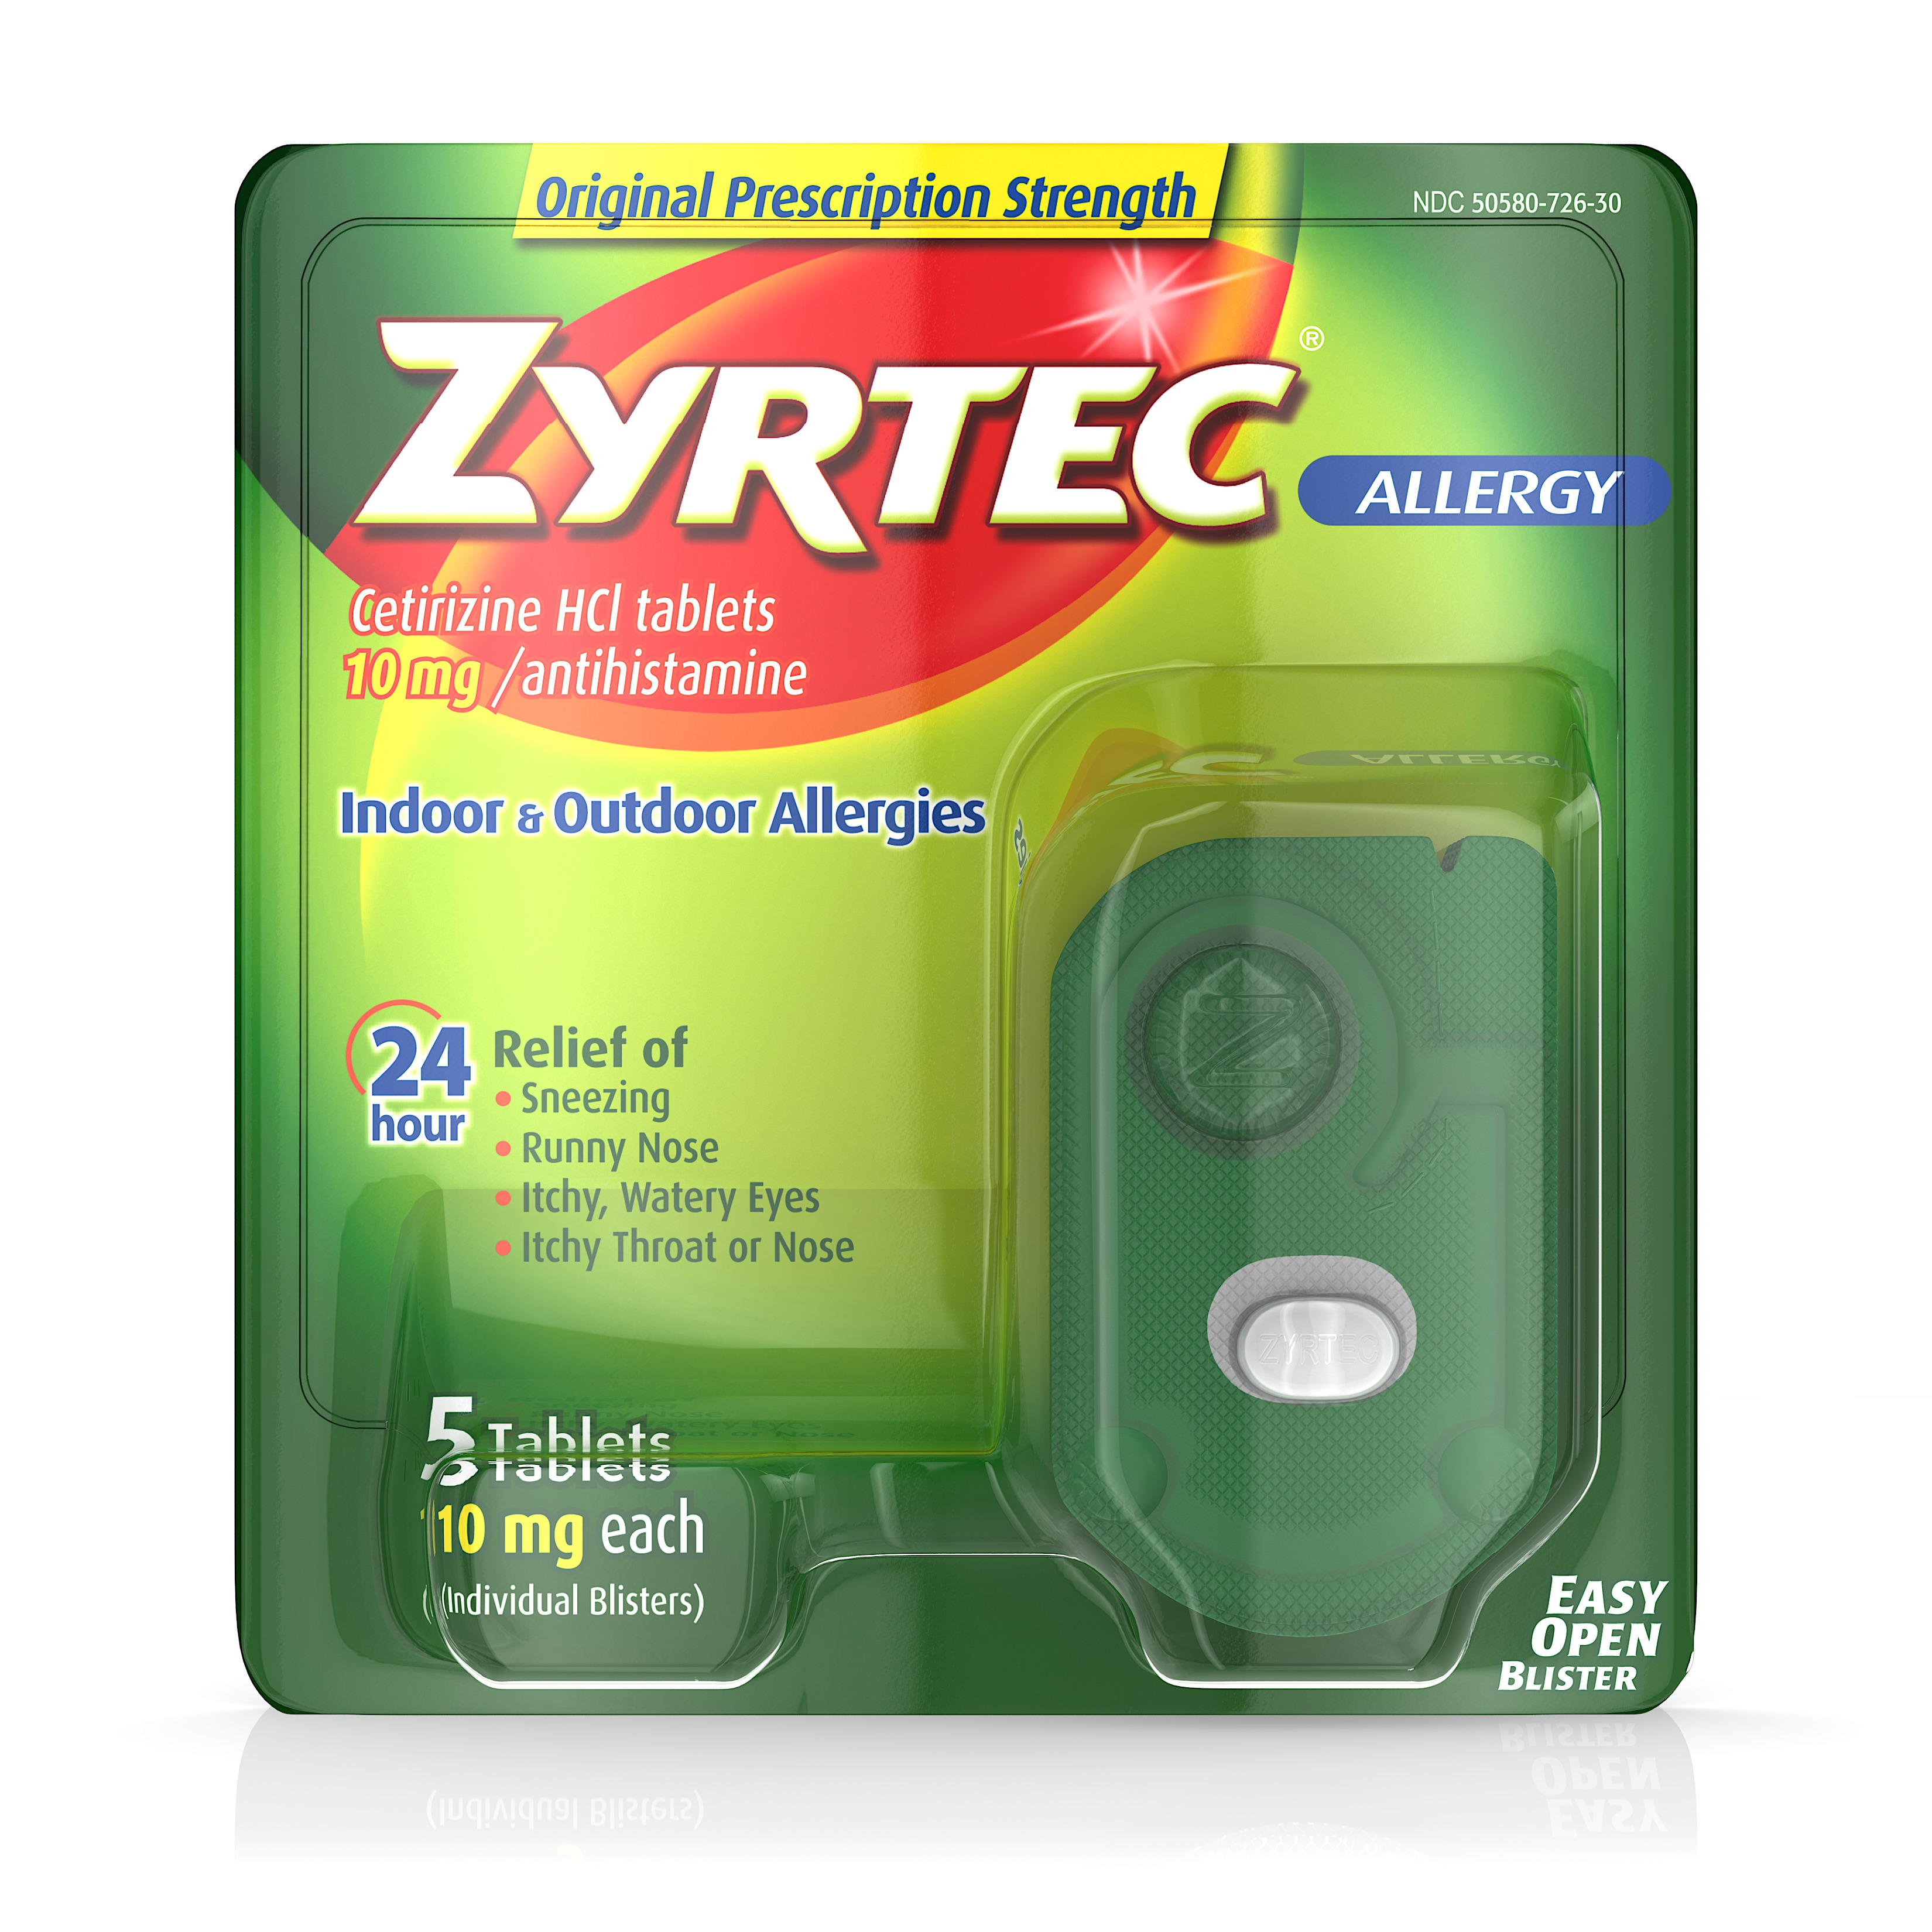 Zyrtec Prescription-Strength Allergy Medicine Tablets With Cetirizine, 5 Count, 10 mg, Travel Size